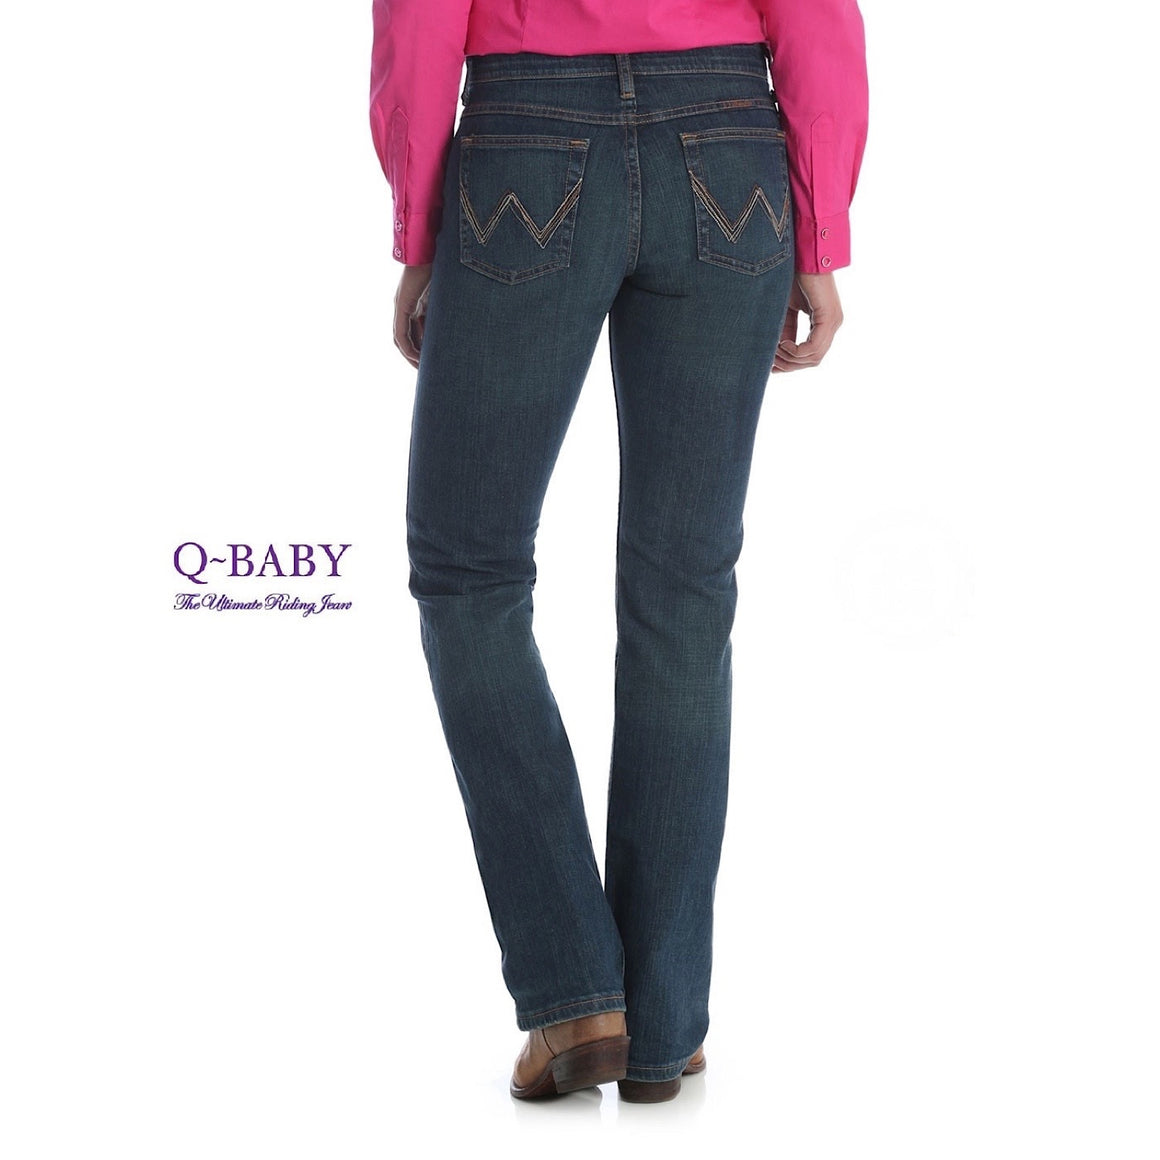 Ladies Q-Baby Ultimate Riding Jean Sits Below Waist, Tuff Buck WRQ20TB